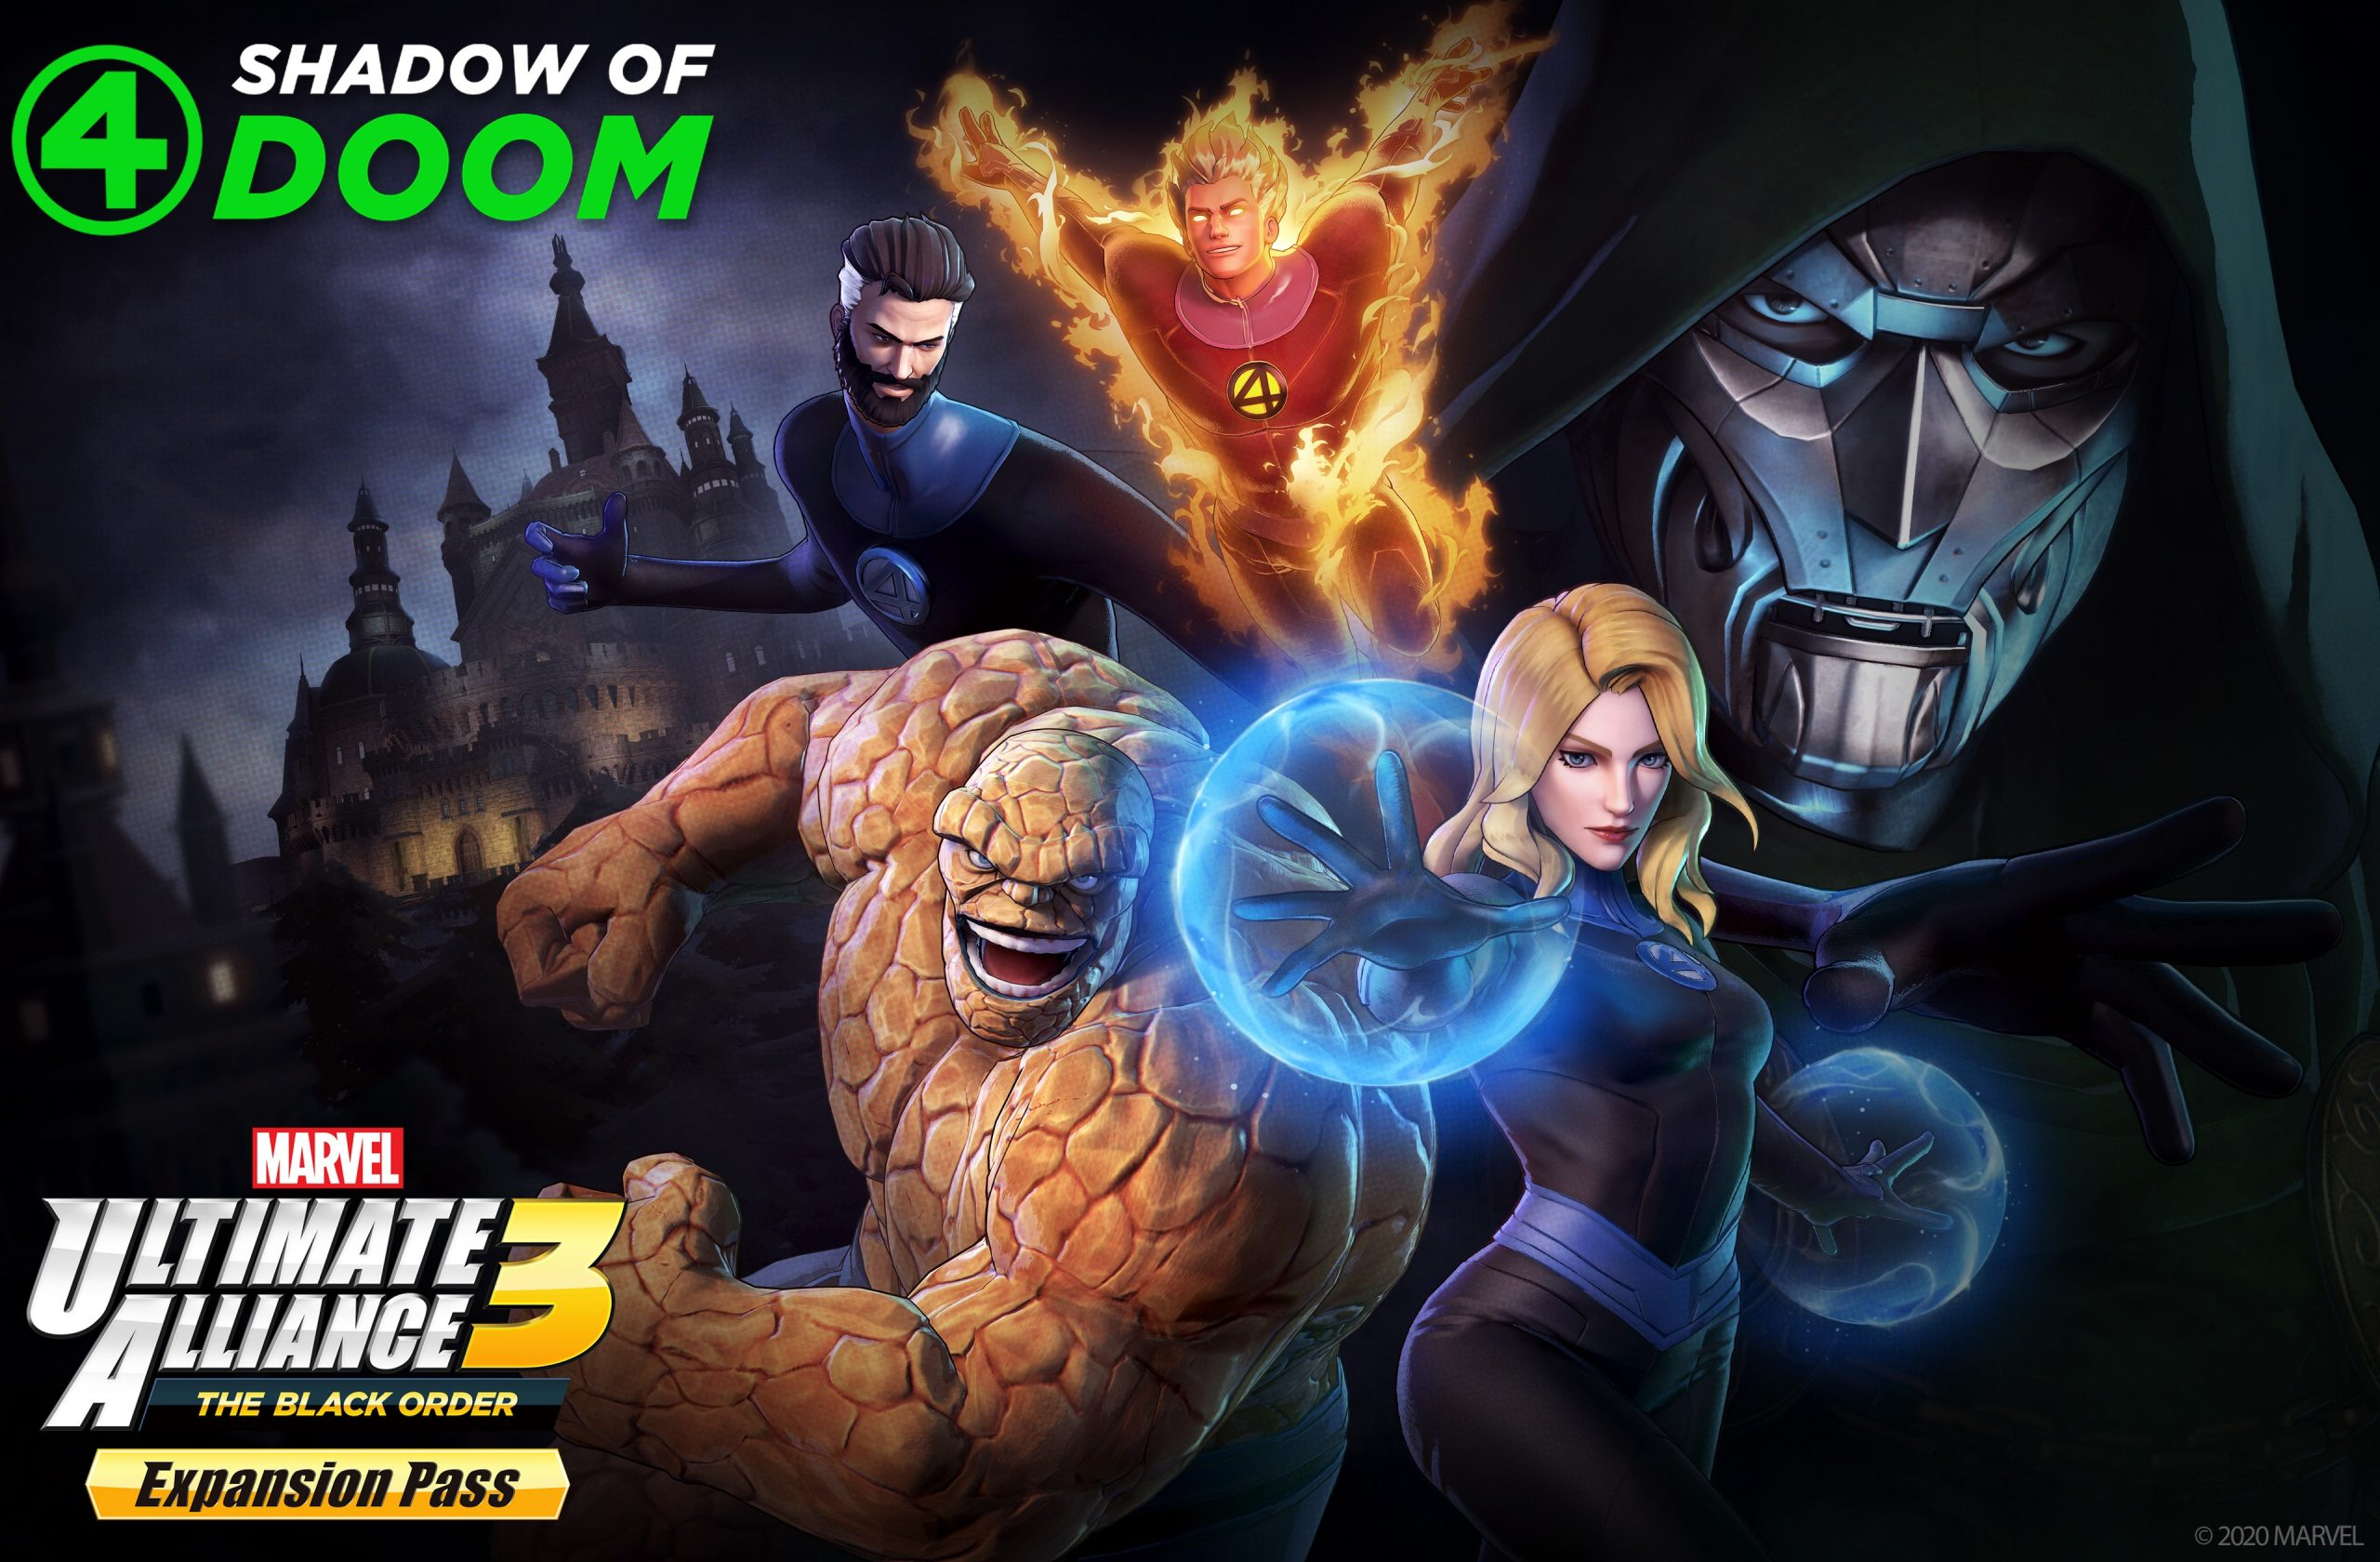 Marvel Ultimate Alliance 3: DLC Pack 3, Shadow of Doom releases on March 26th